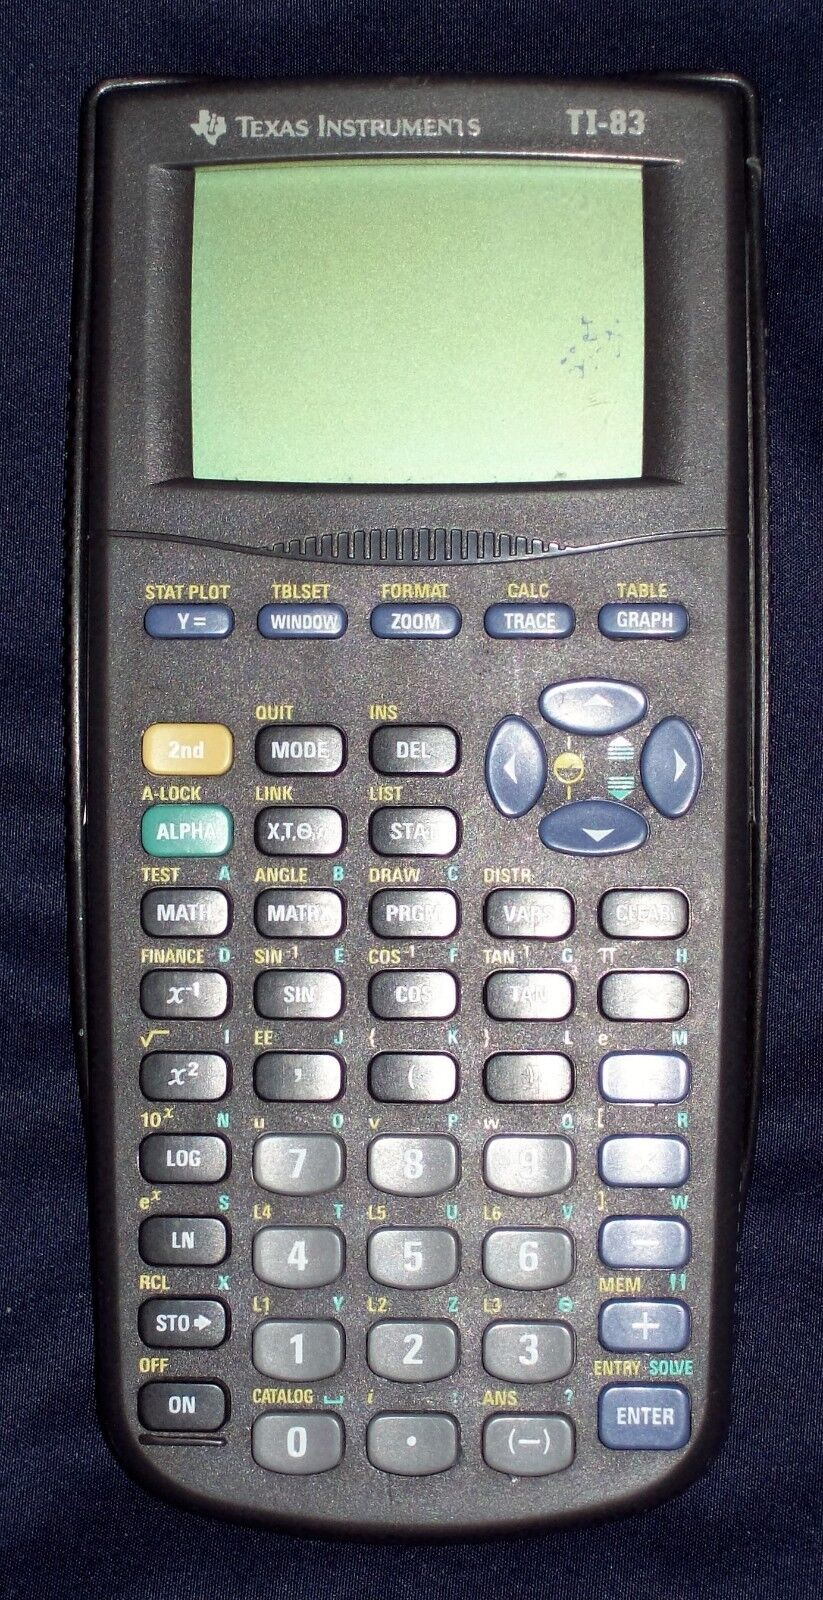 Texas Instruments TI-83 Graphing Calculator (1999 Edition)